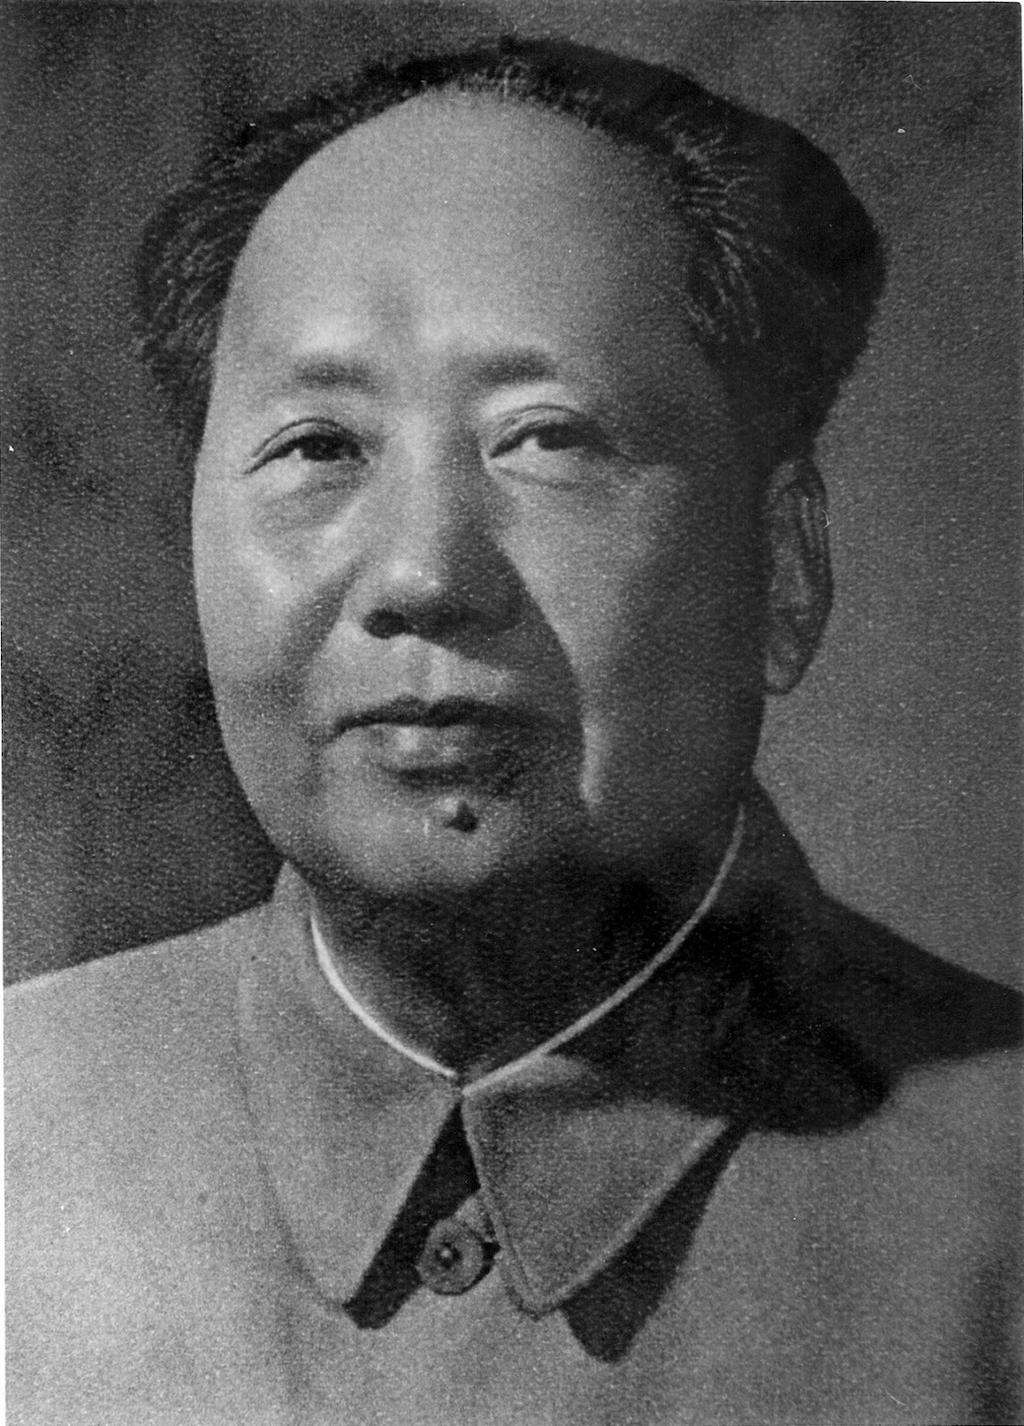 [Image: mao_zedong_portrait_by_shitalloverhumanity-d5fv7lh.jpg]